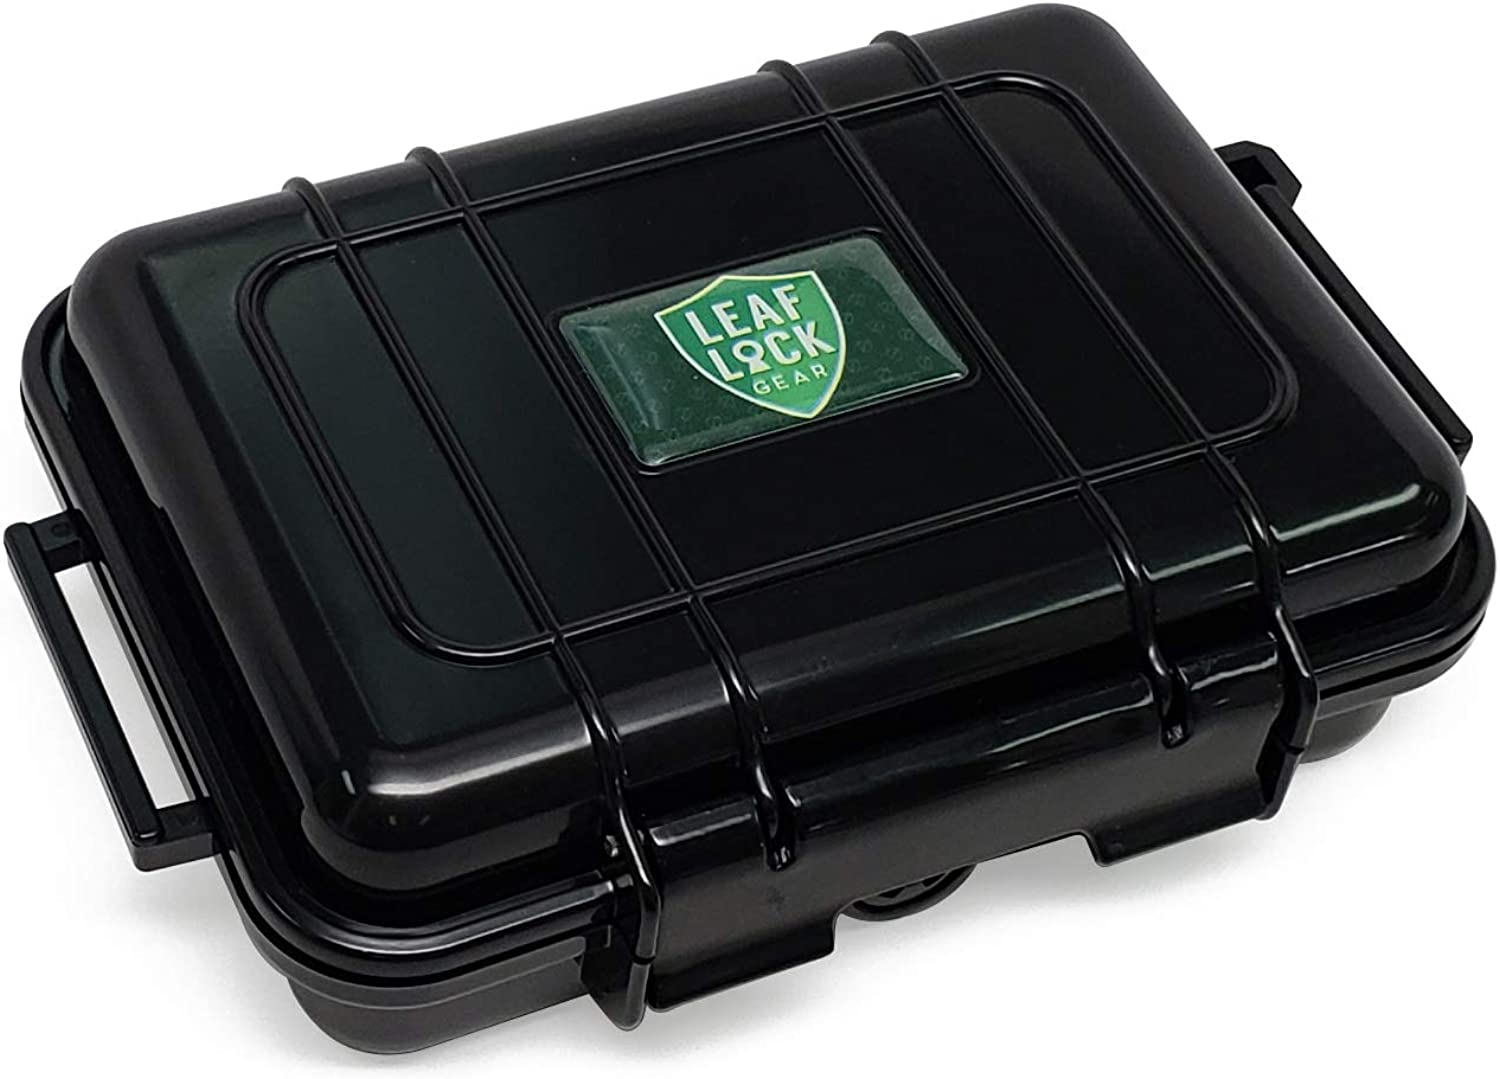 Leaf Lock Gear Air-Tight, Waterproof, Smell Proof Travel Case